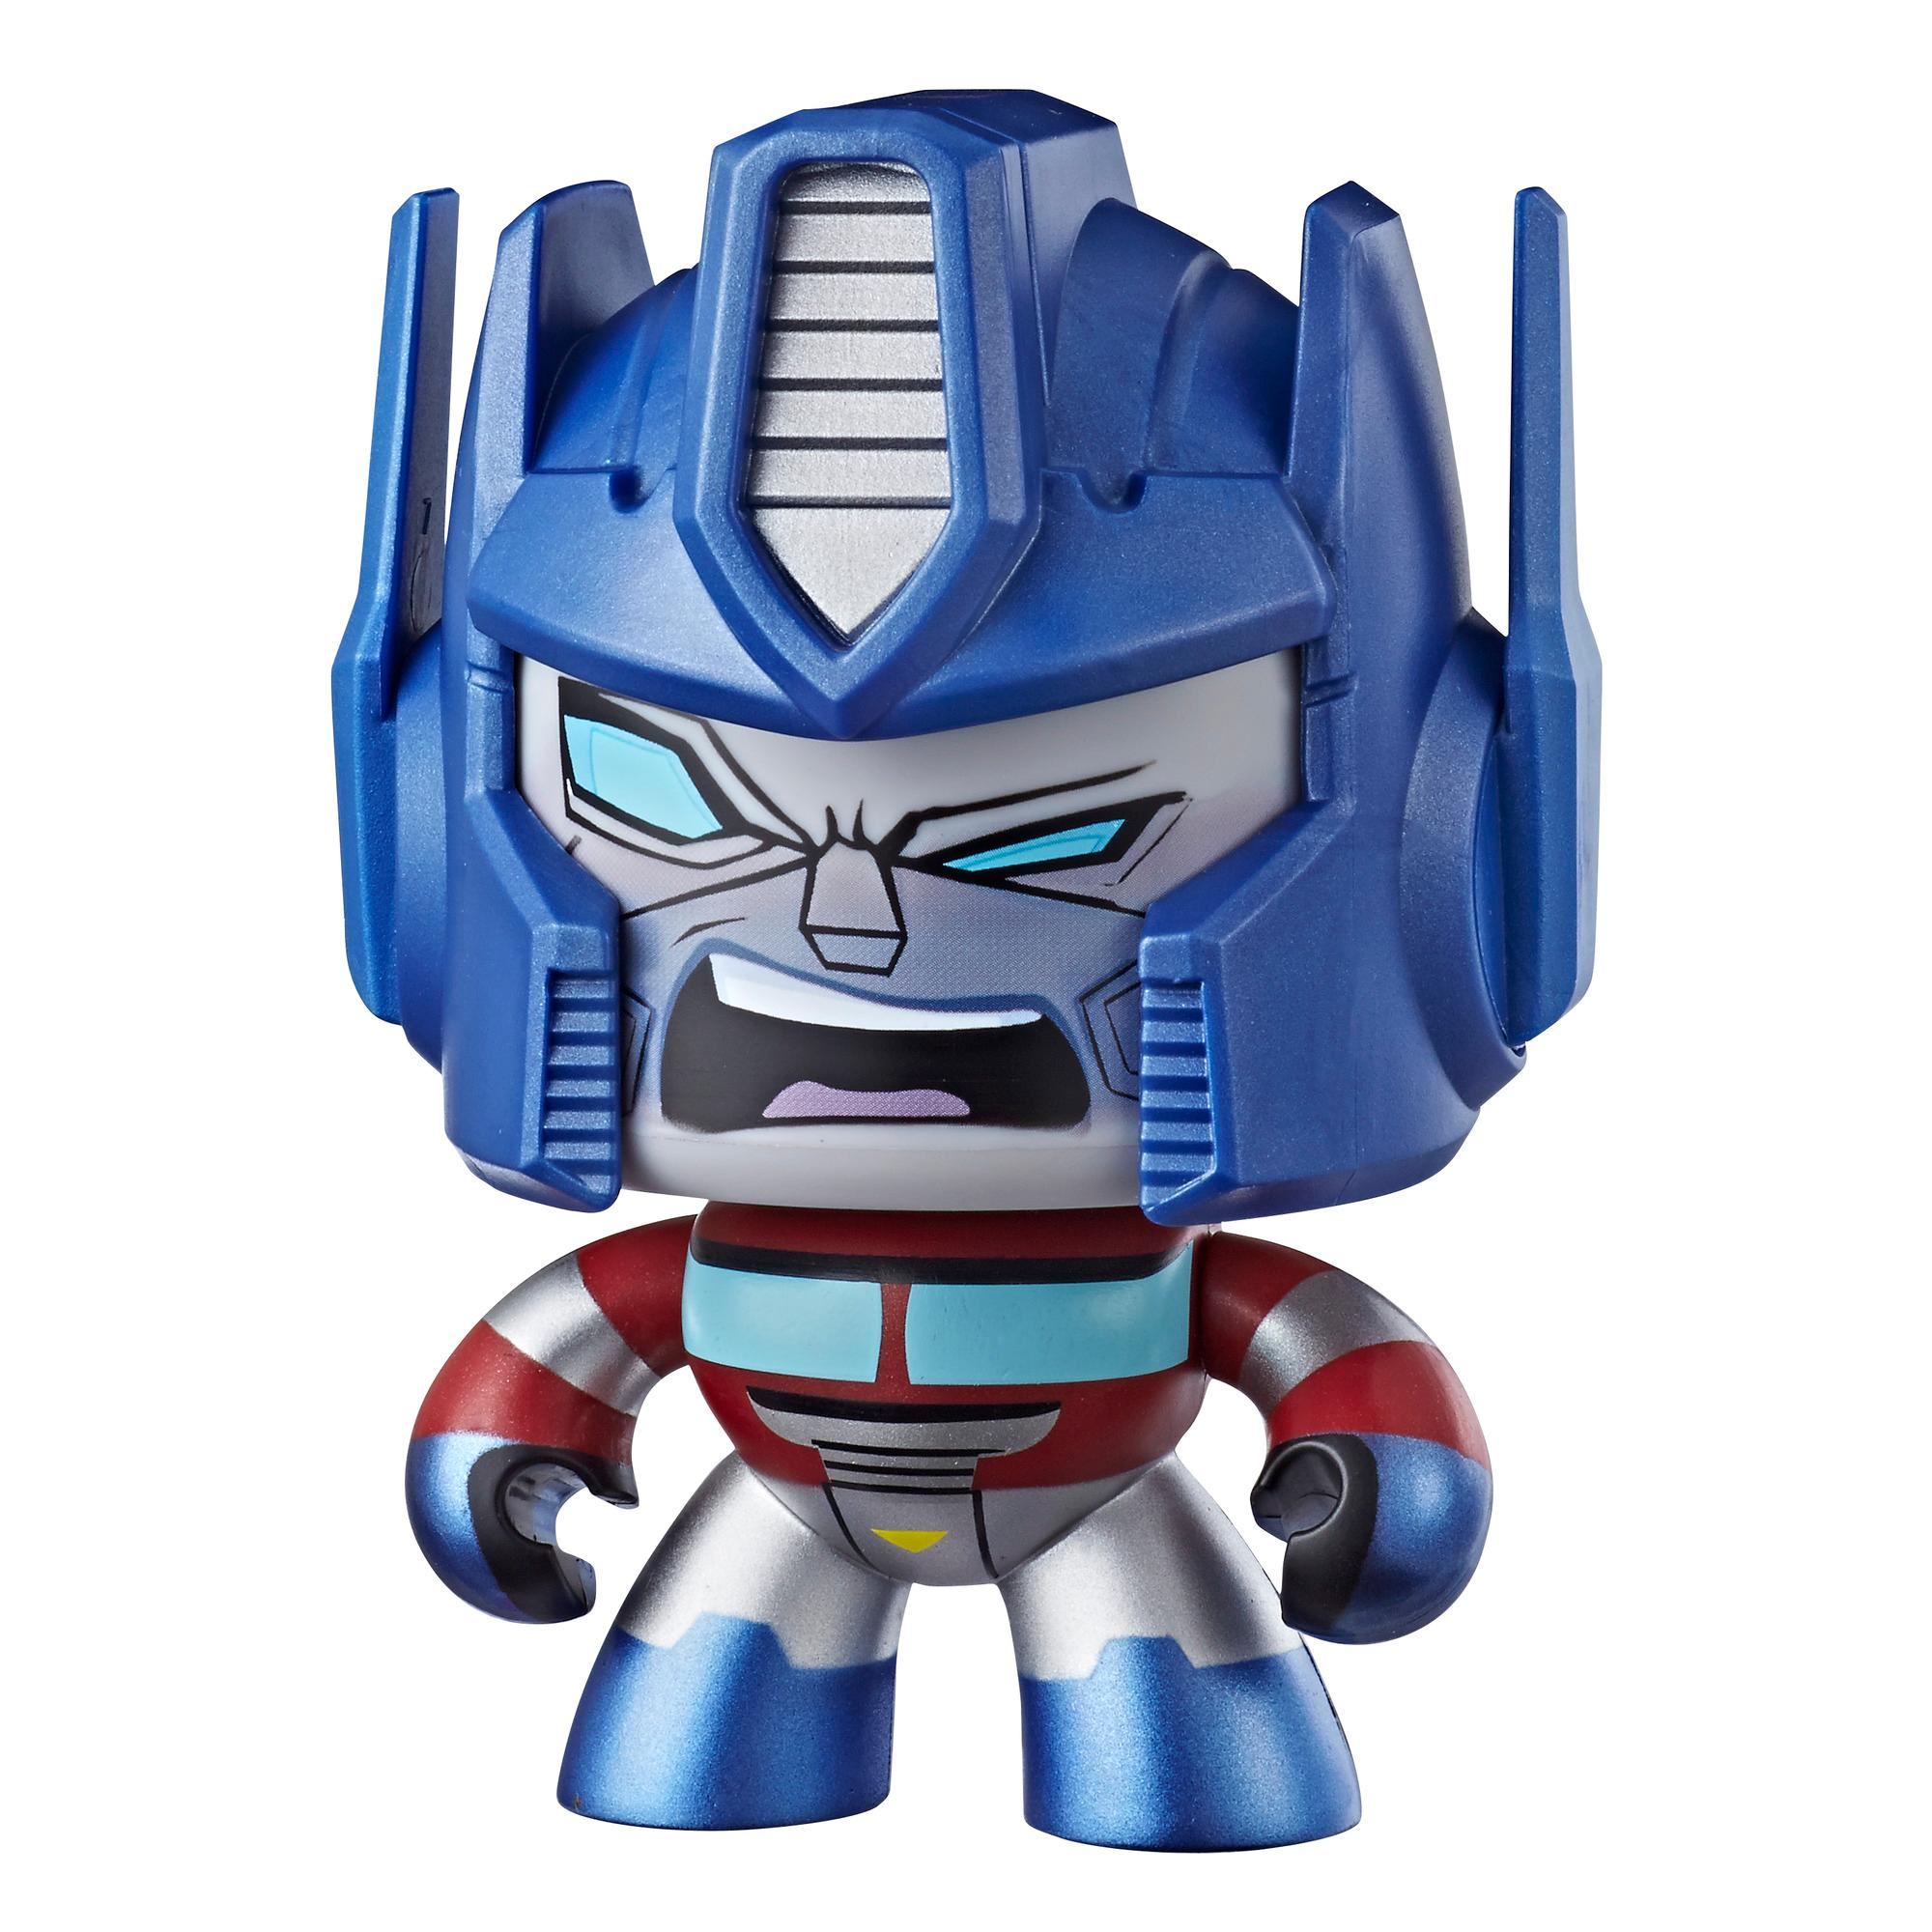 Transformers Mighty Muggs Optimus Prime #1